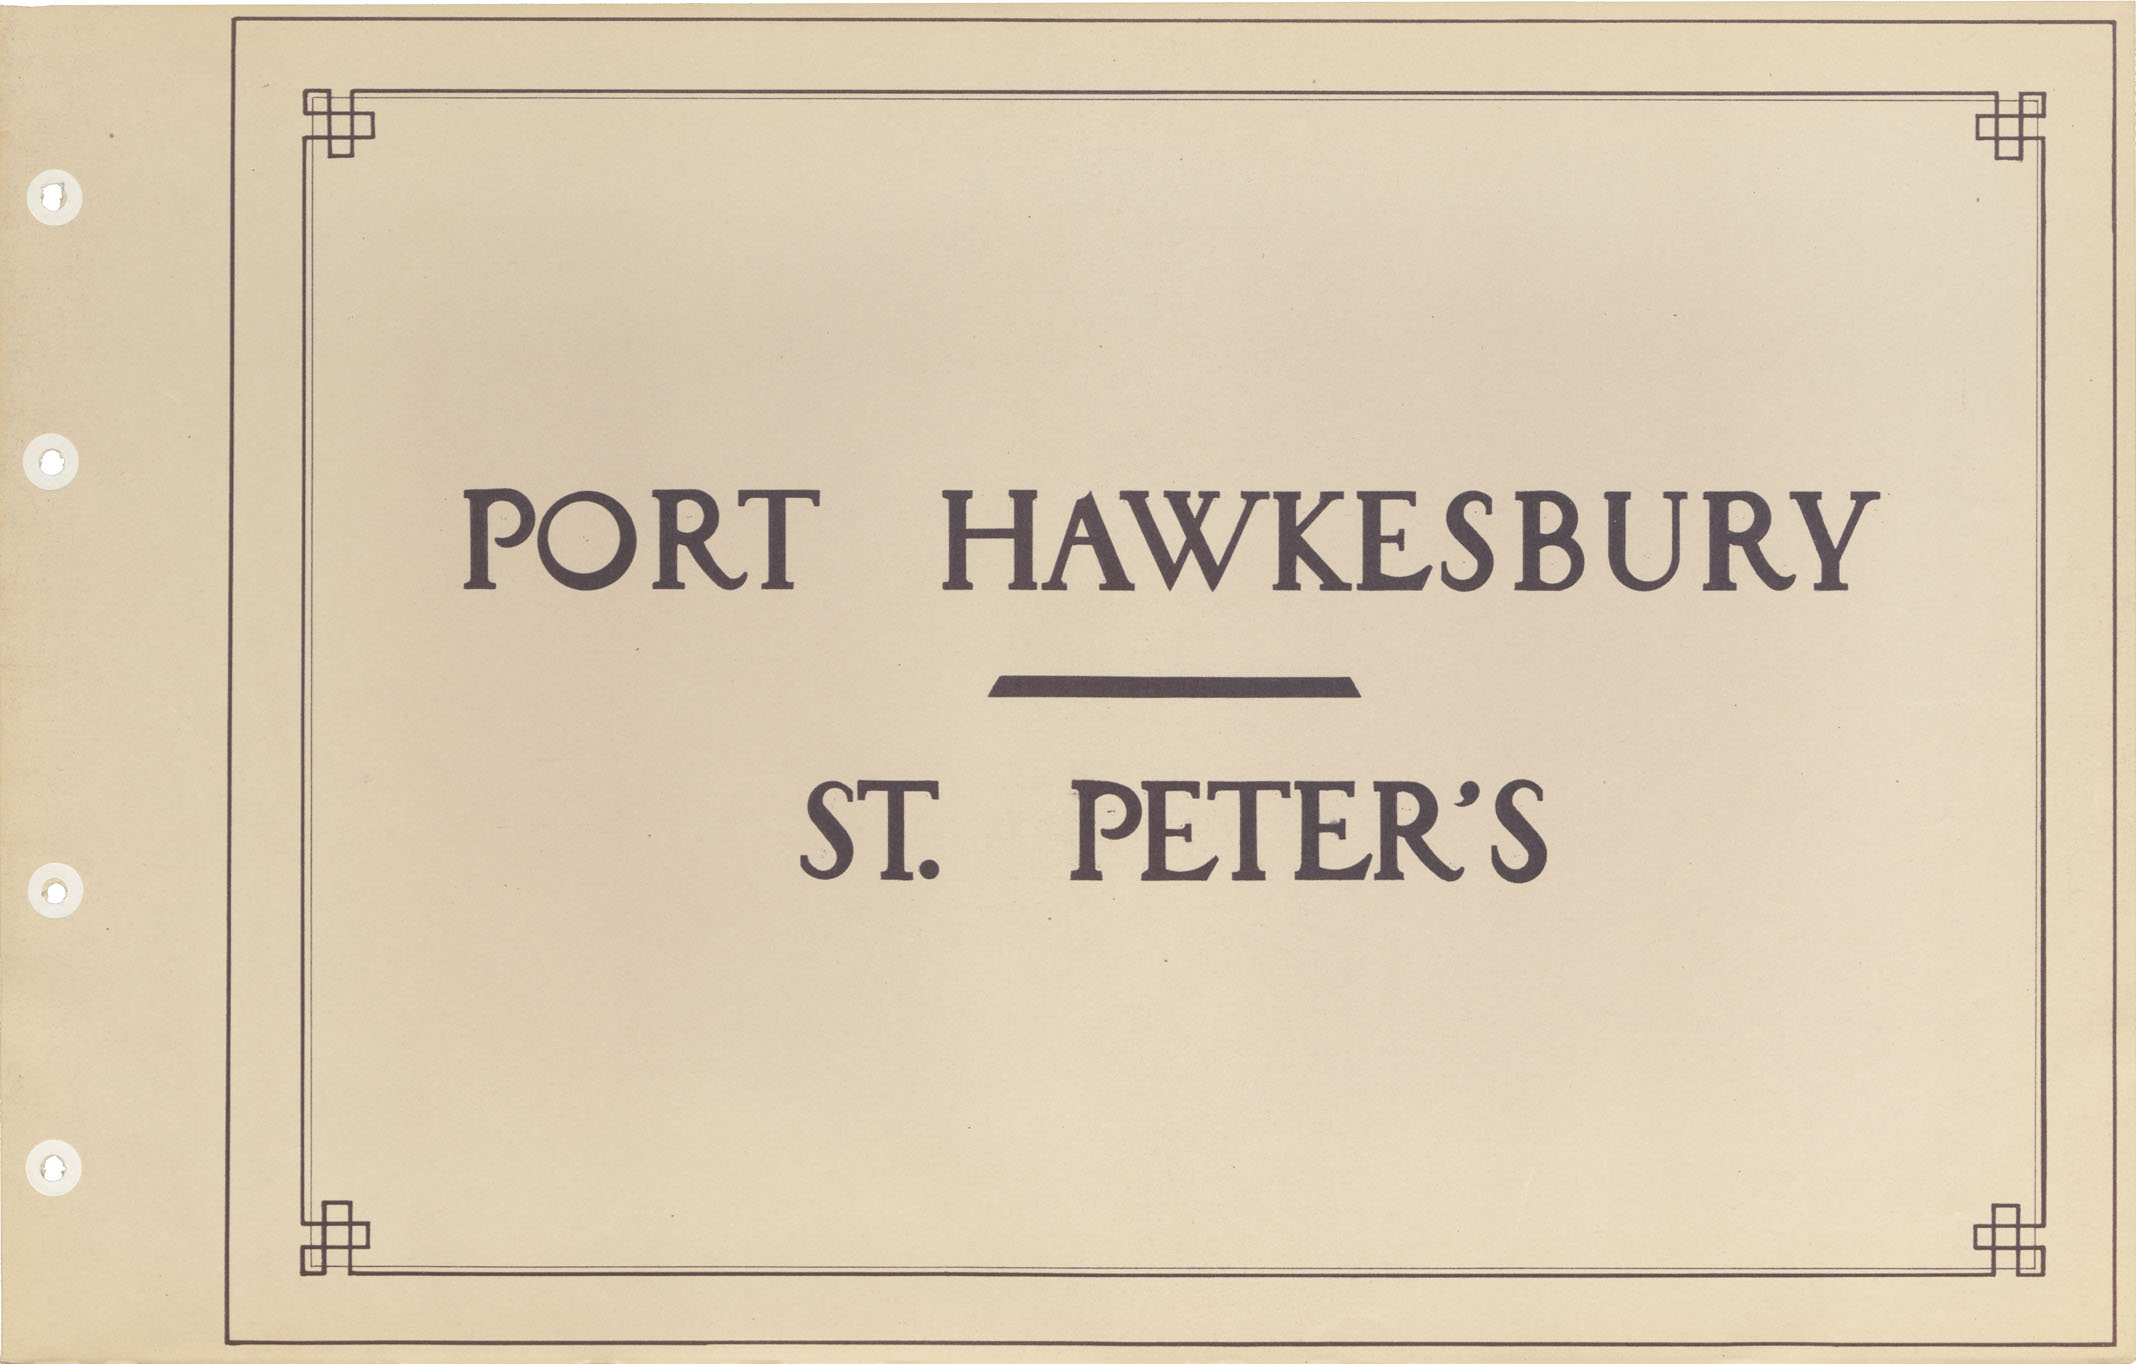 Port Hawkesbury - St. Peter's